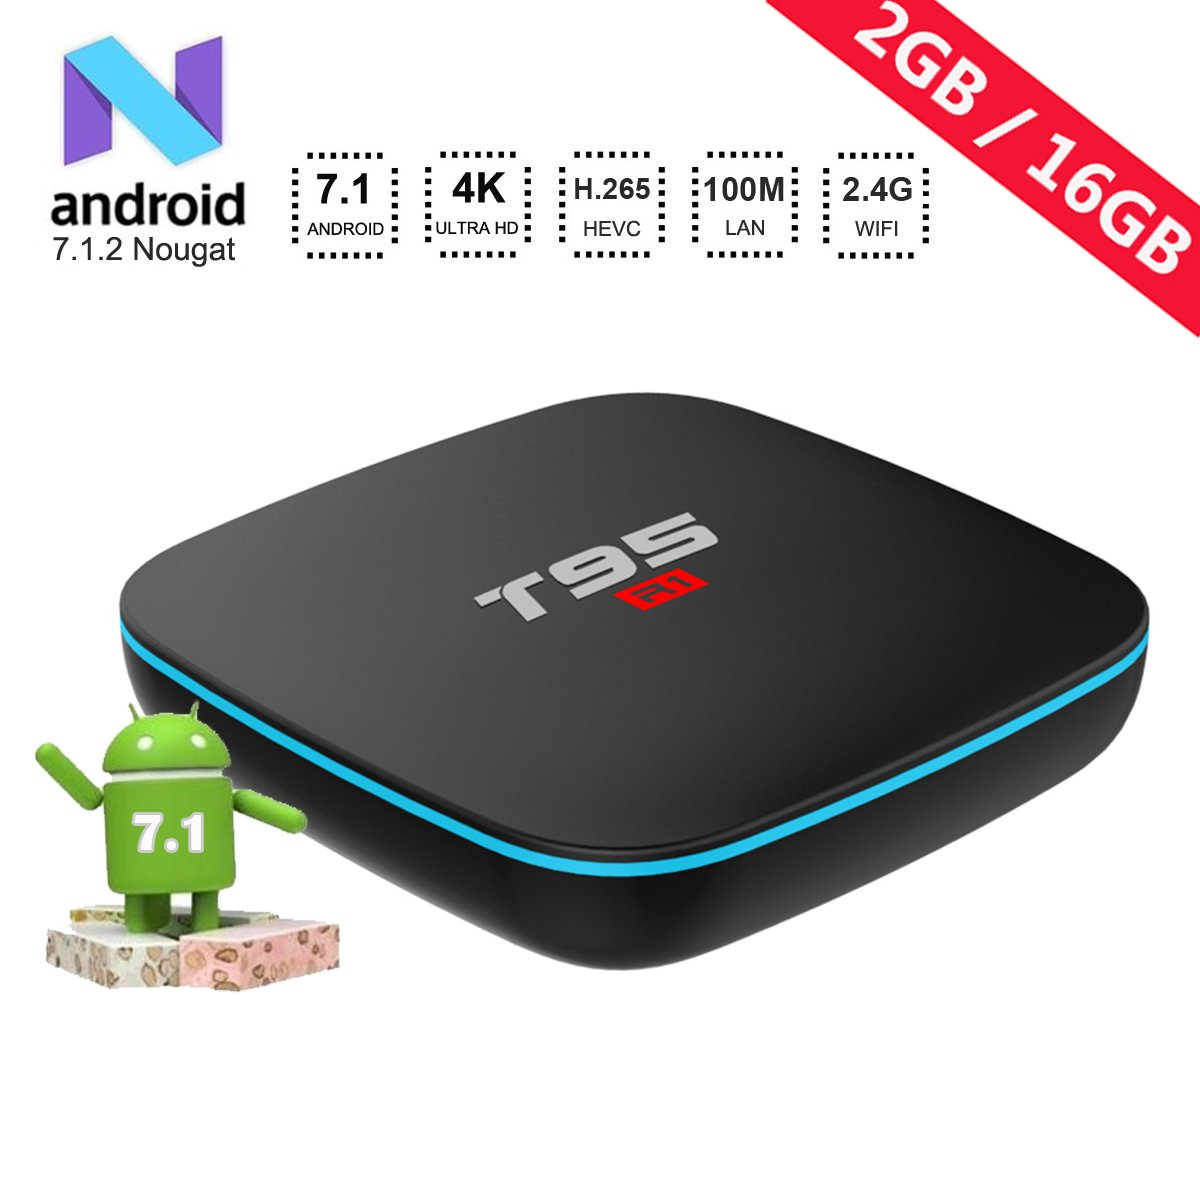 2018 Model Android TV Box,T95 R1 Android 7.1 Boxes with 2GB RAM 16GB ROM Quad-Core A53 Processor 2.4GHz WiFi 4K Ultra HD Smart TV Box